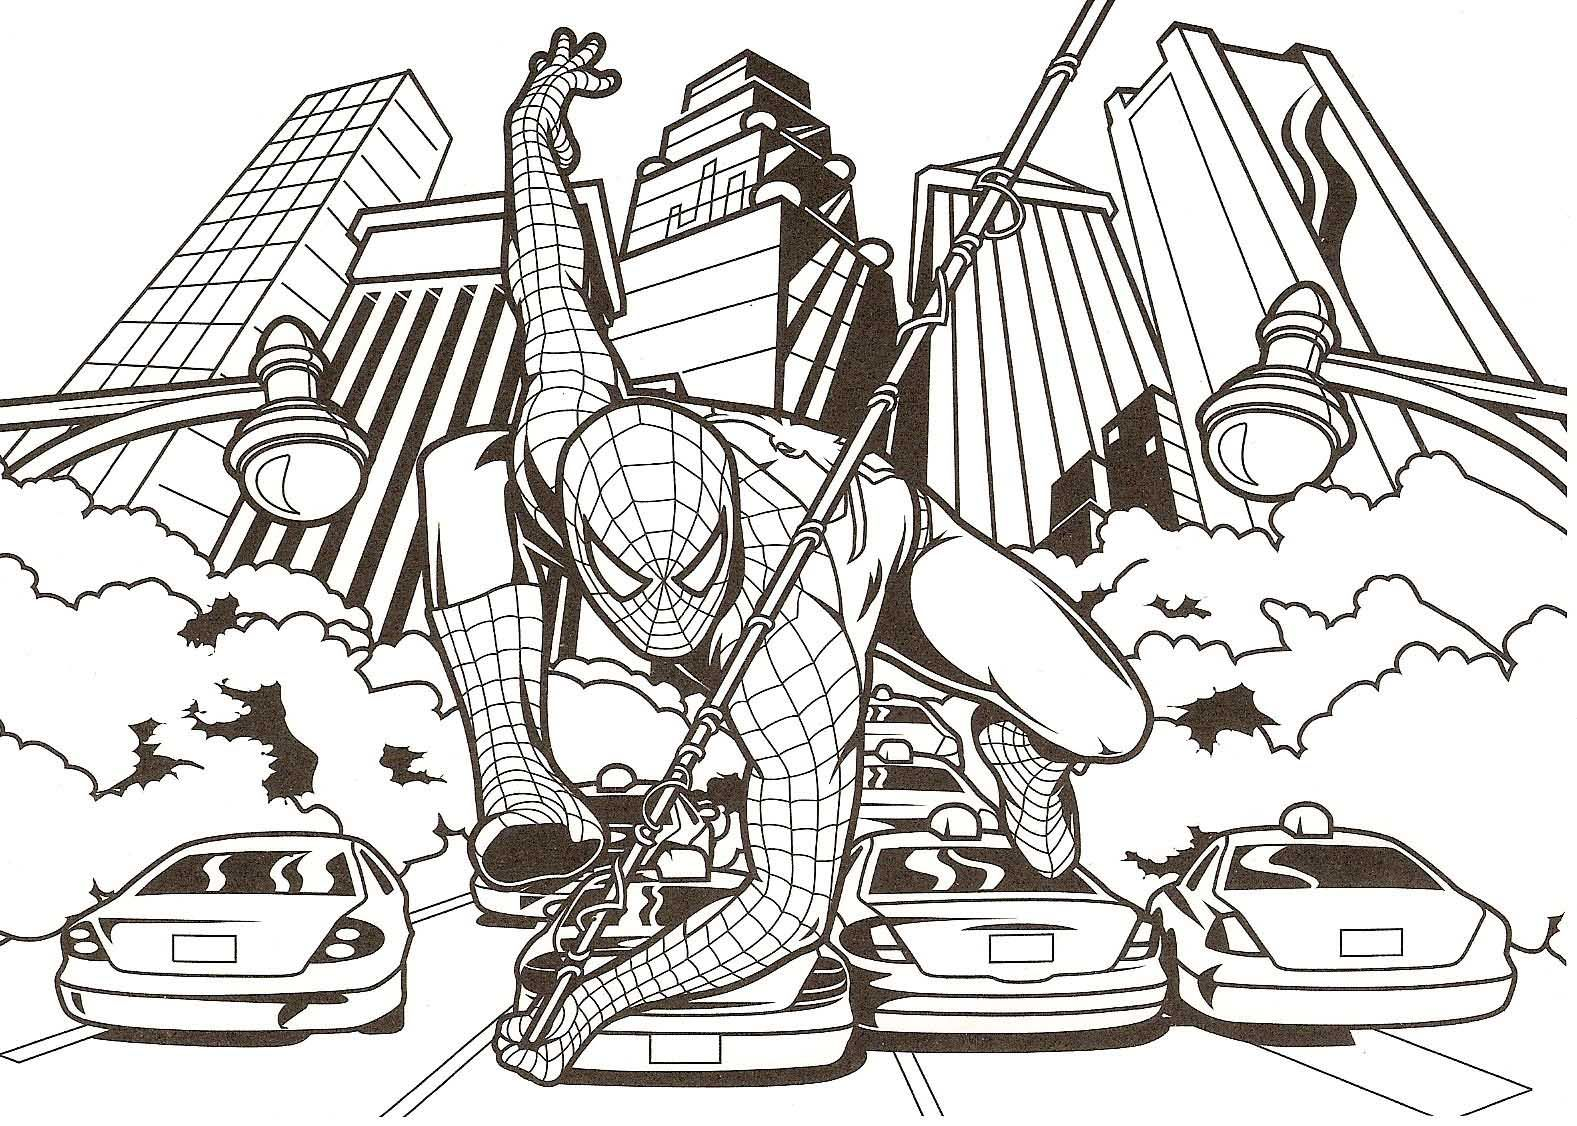 Amazing Spiderman Coloring Pages Printable And Book To Print For Free Find More Online Kids Adults Of